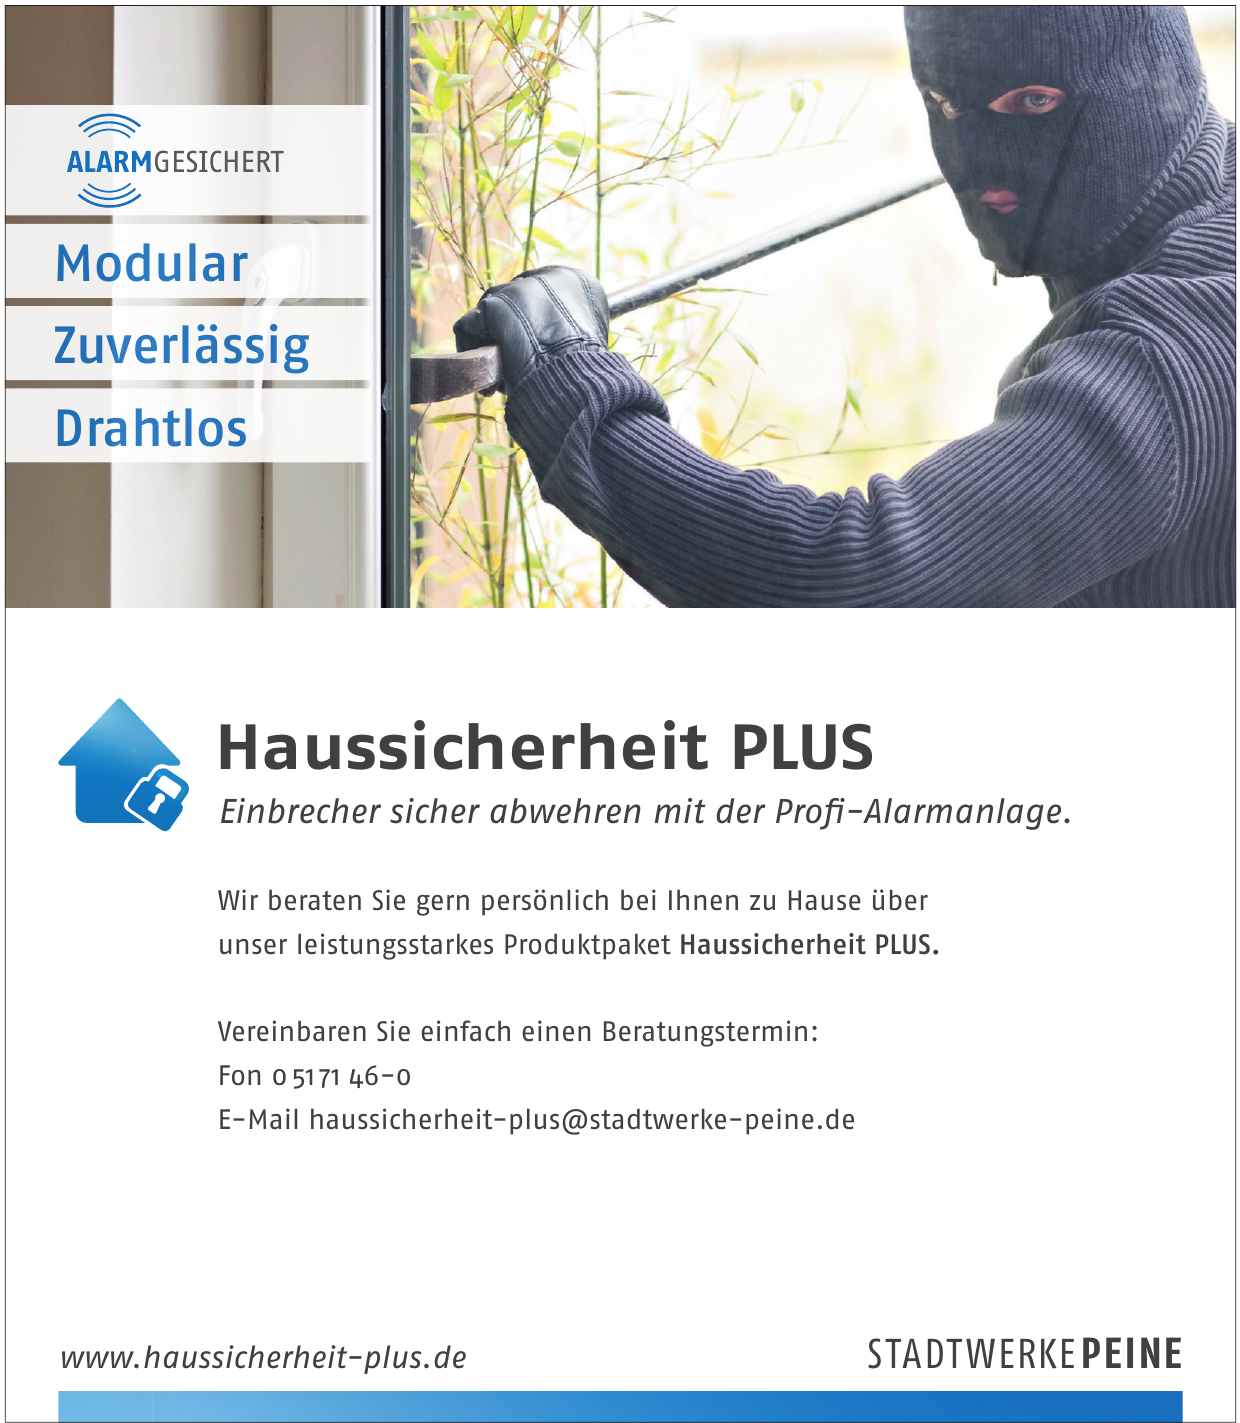 Haussicherheit Plus